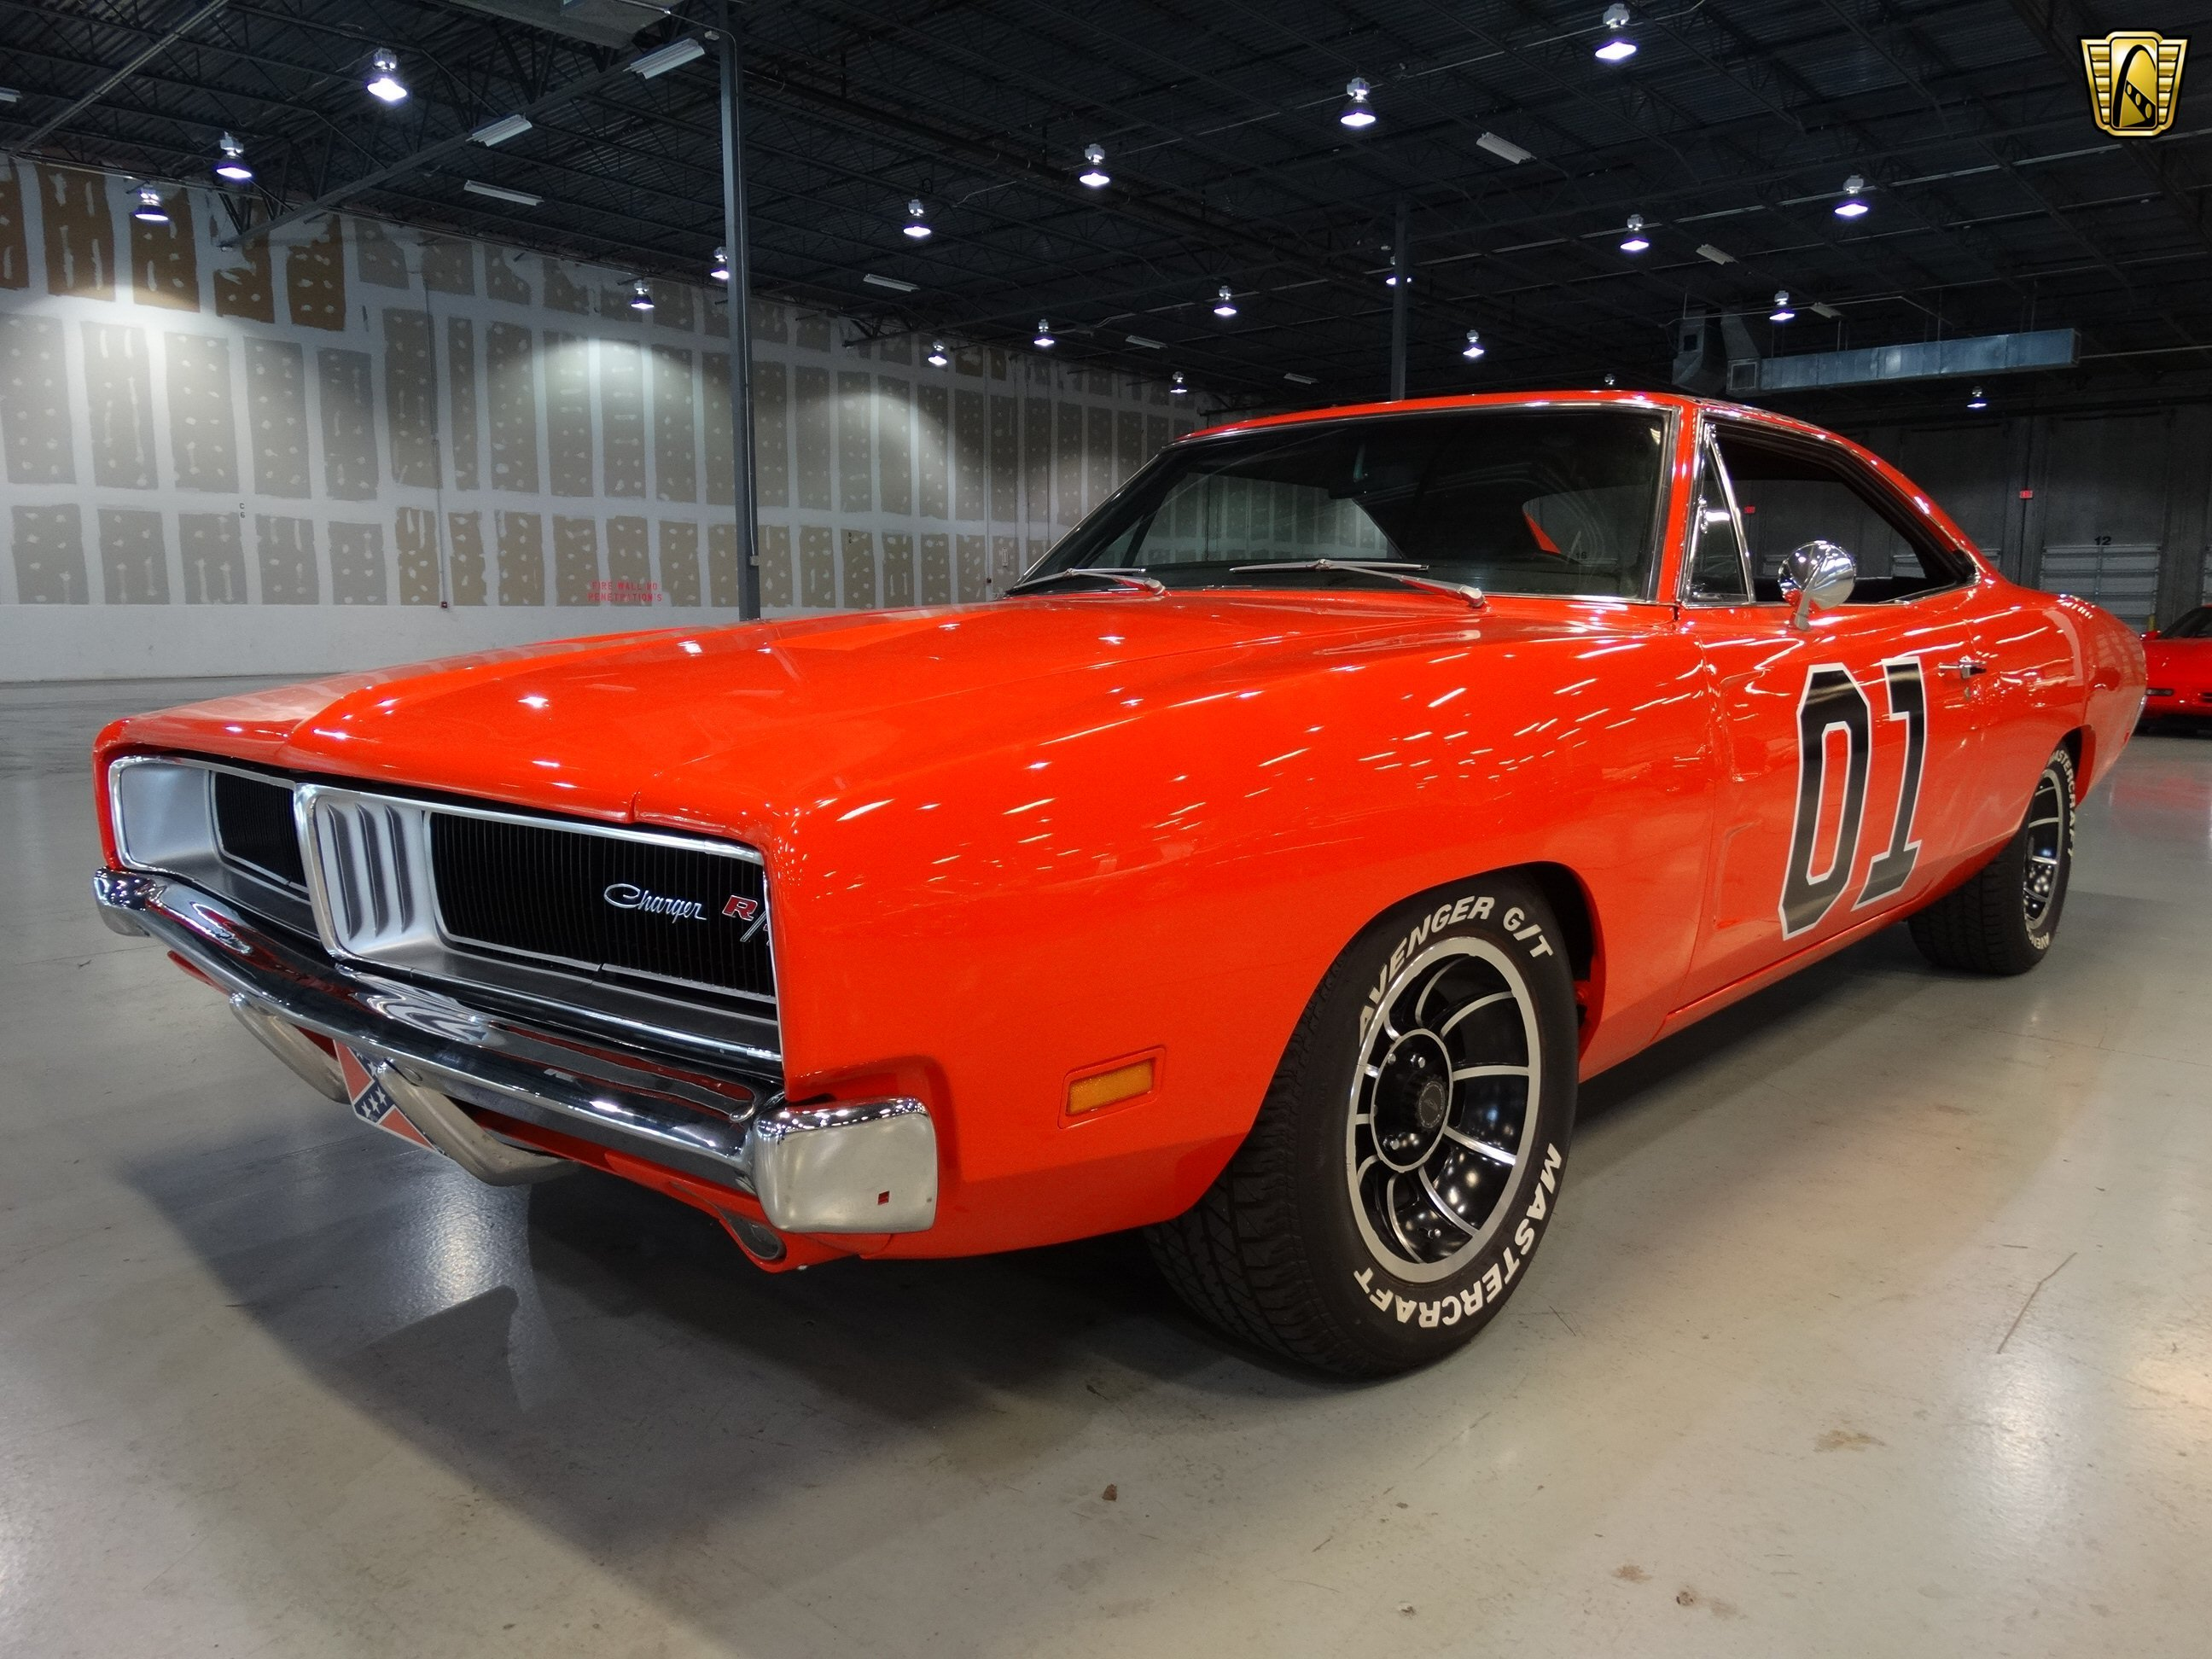 Dodge Charger General Lee Orange Classic Cars Wallpaper